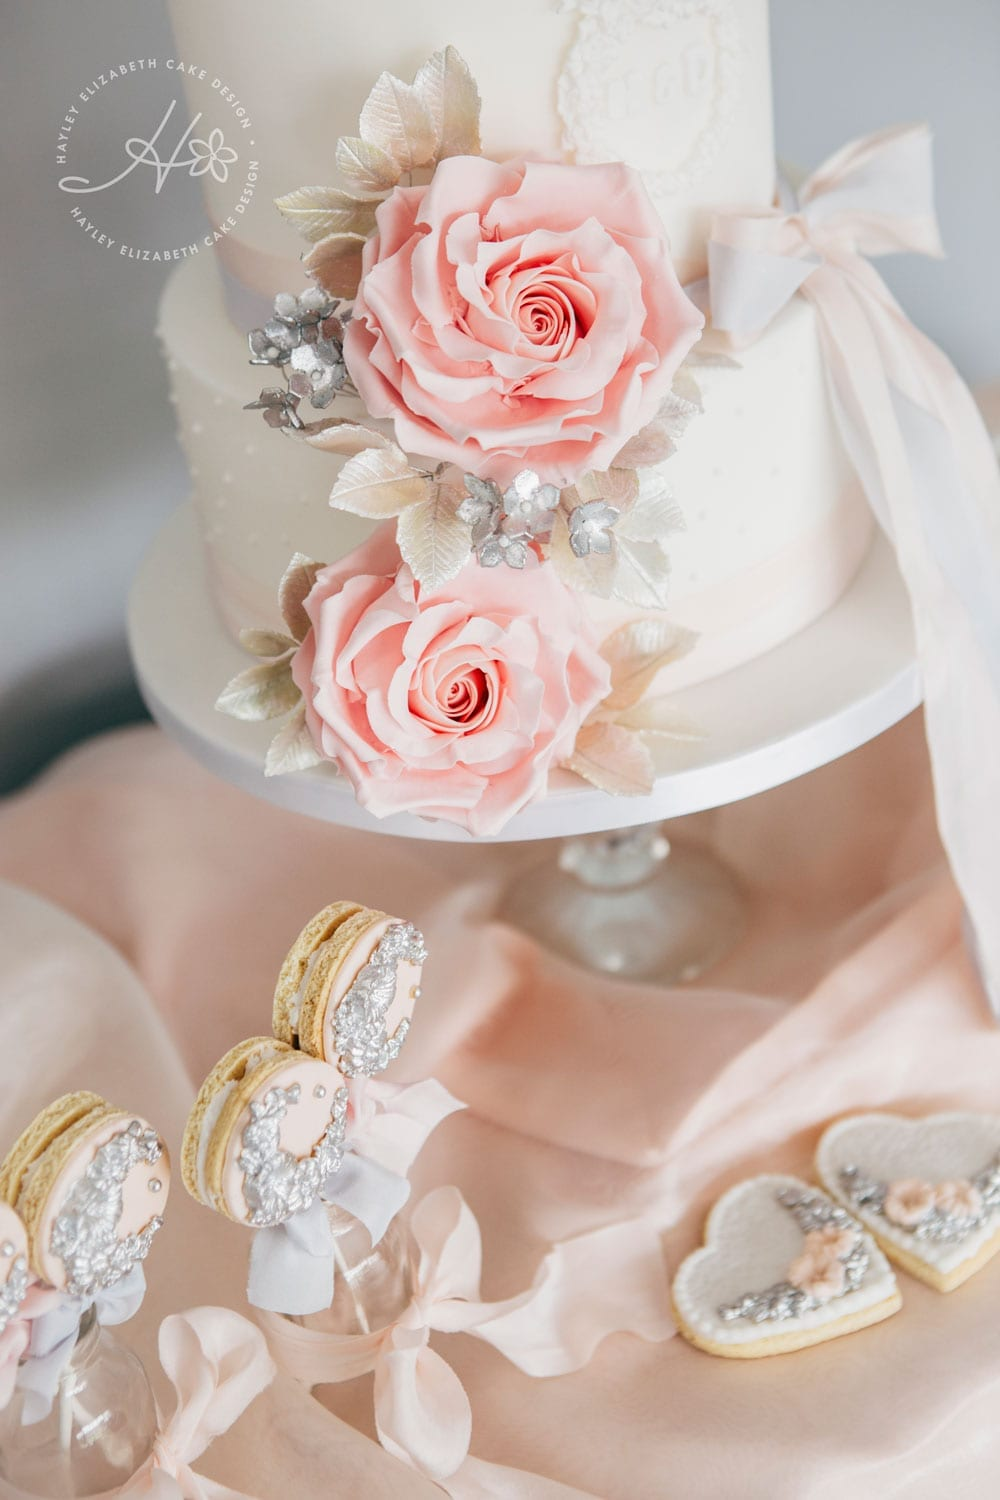 Pink grey and silver dessert table, luxury wedding cake, cake pops, iced biscuits, mini cakes, dessert bar, white wedding cake, sugar flowers, wedding cake inspiration